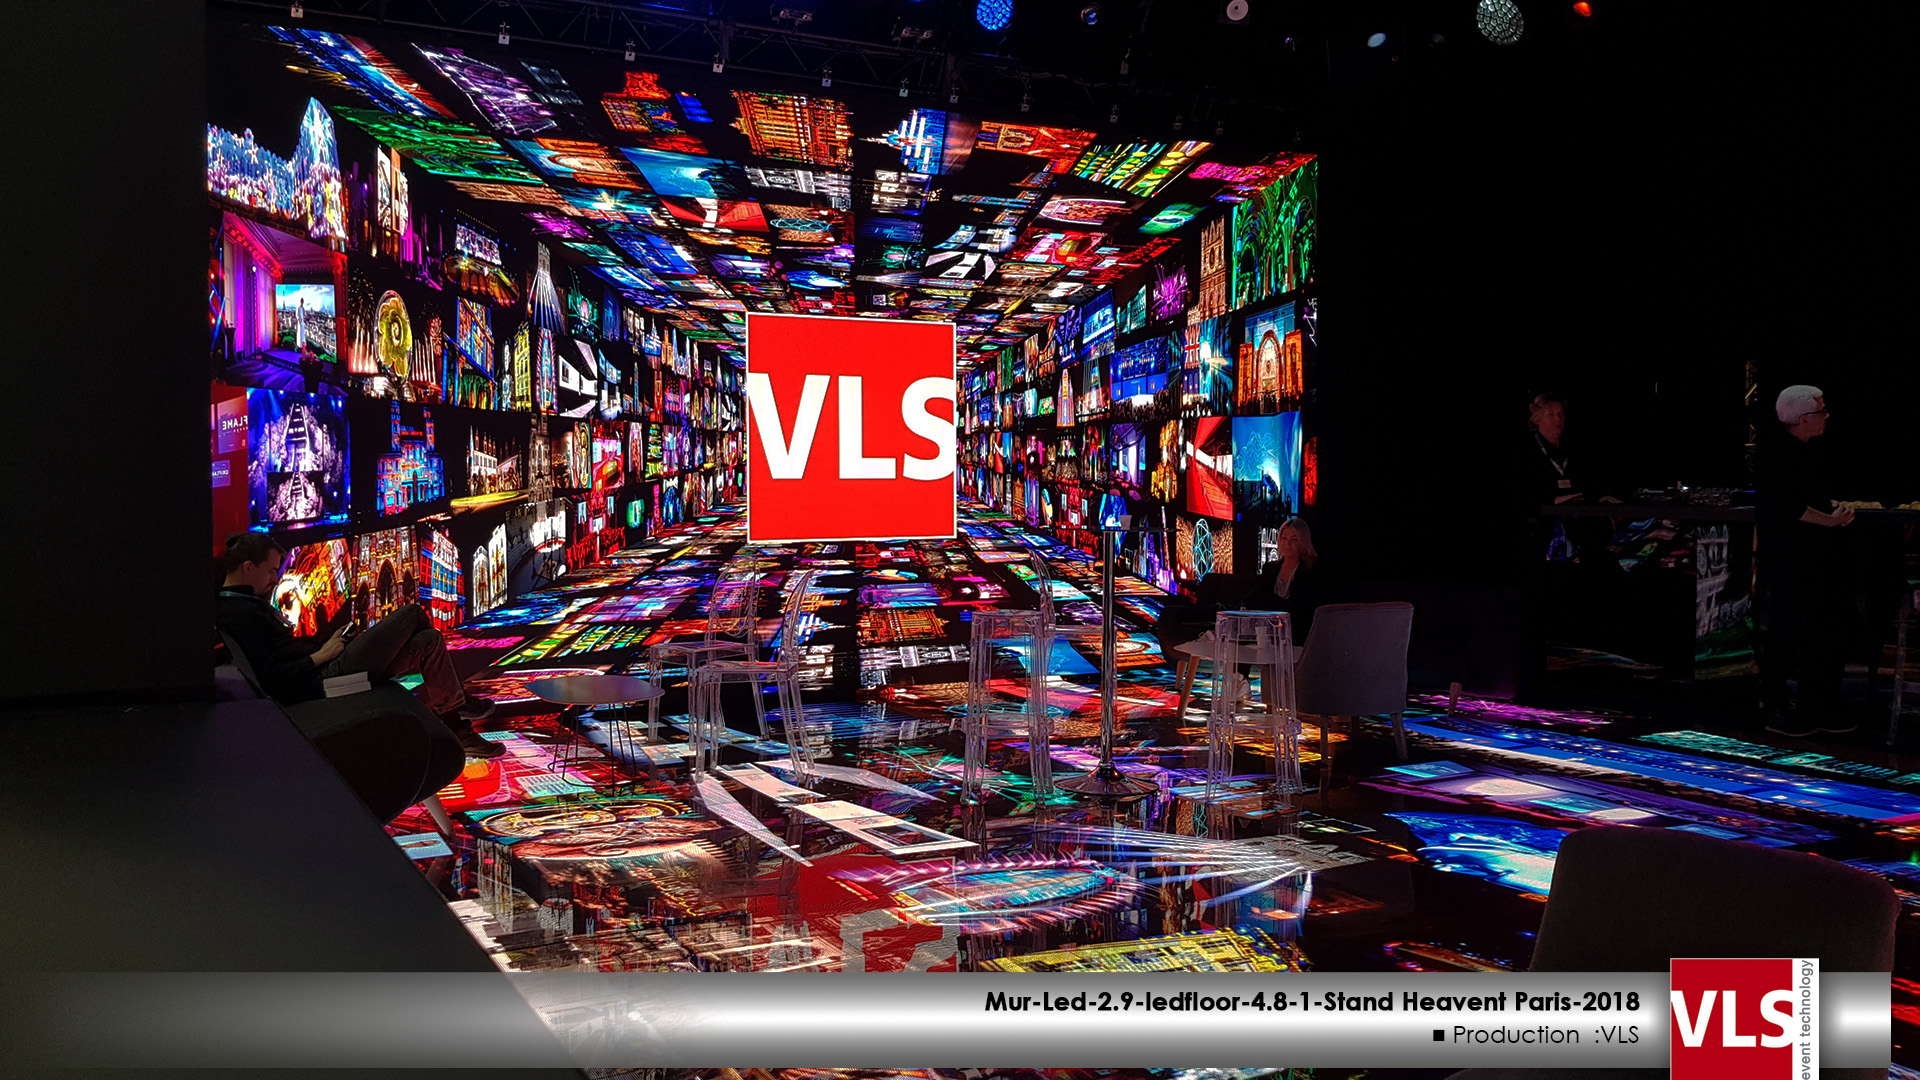 salon heavent 2018 stand VLS mur led immersif